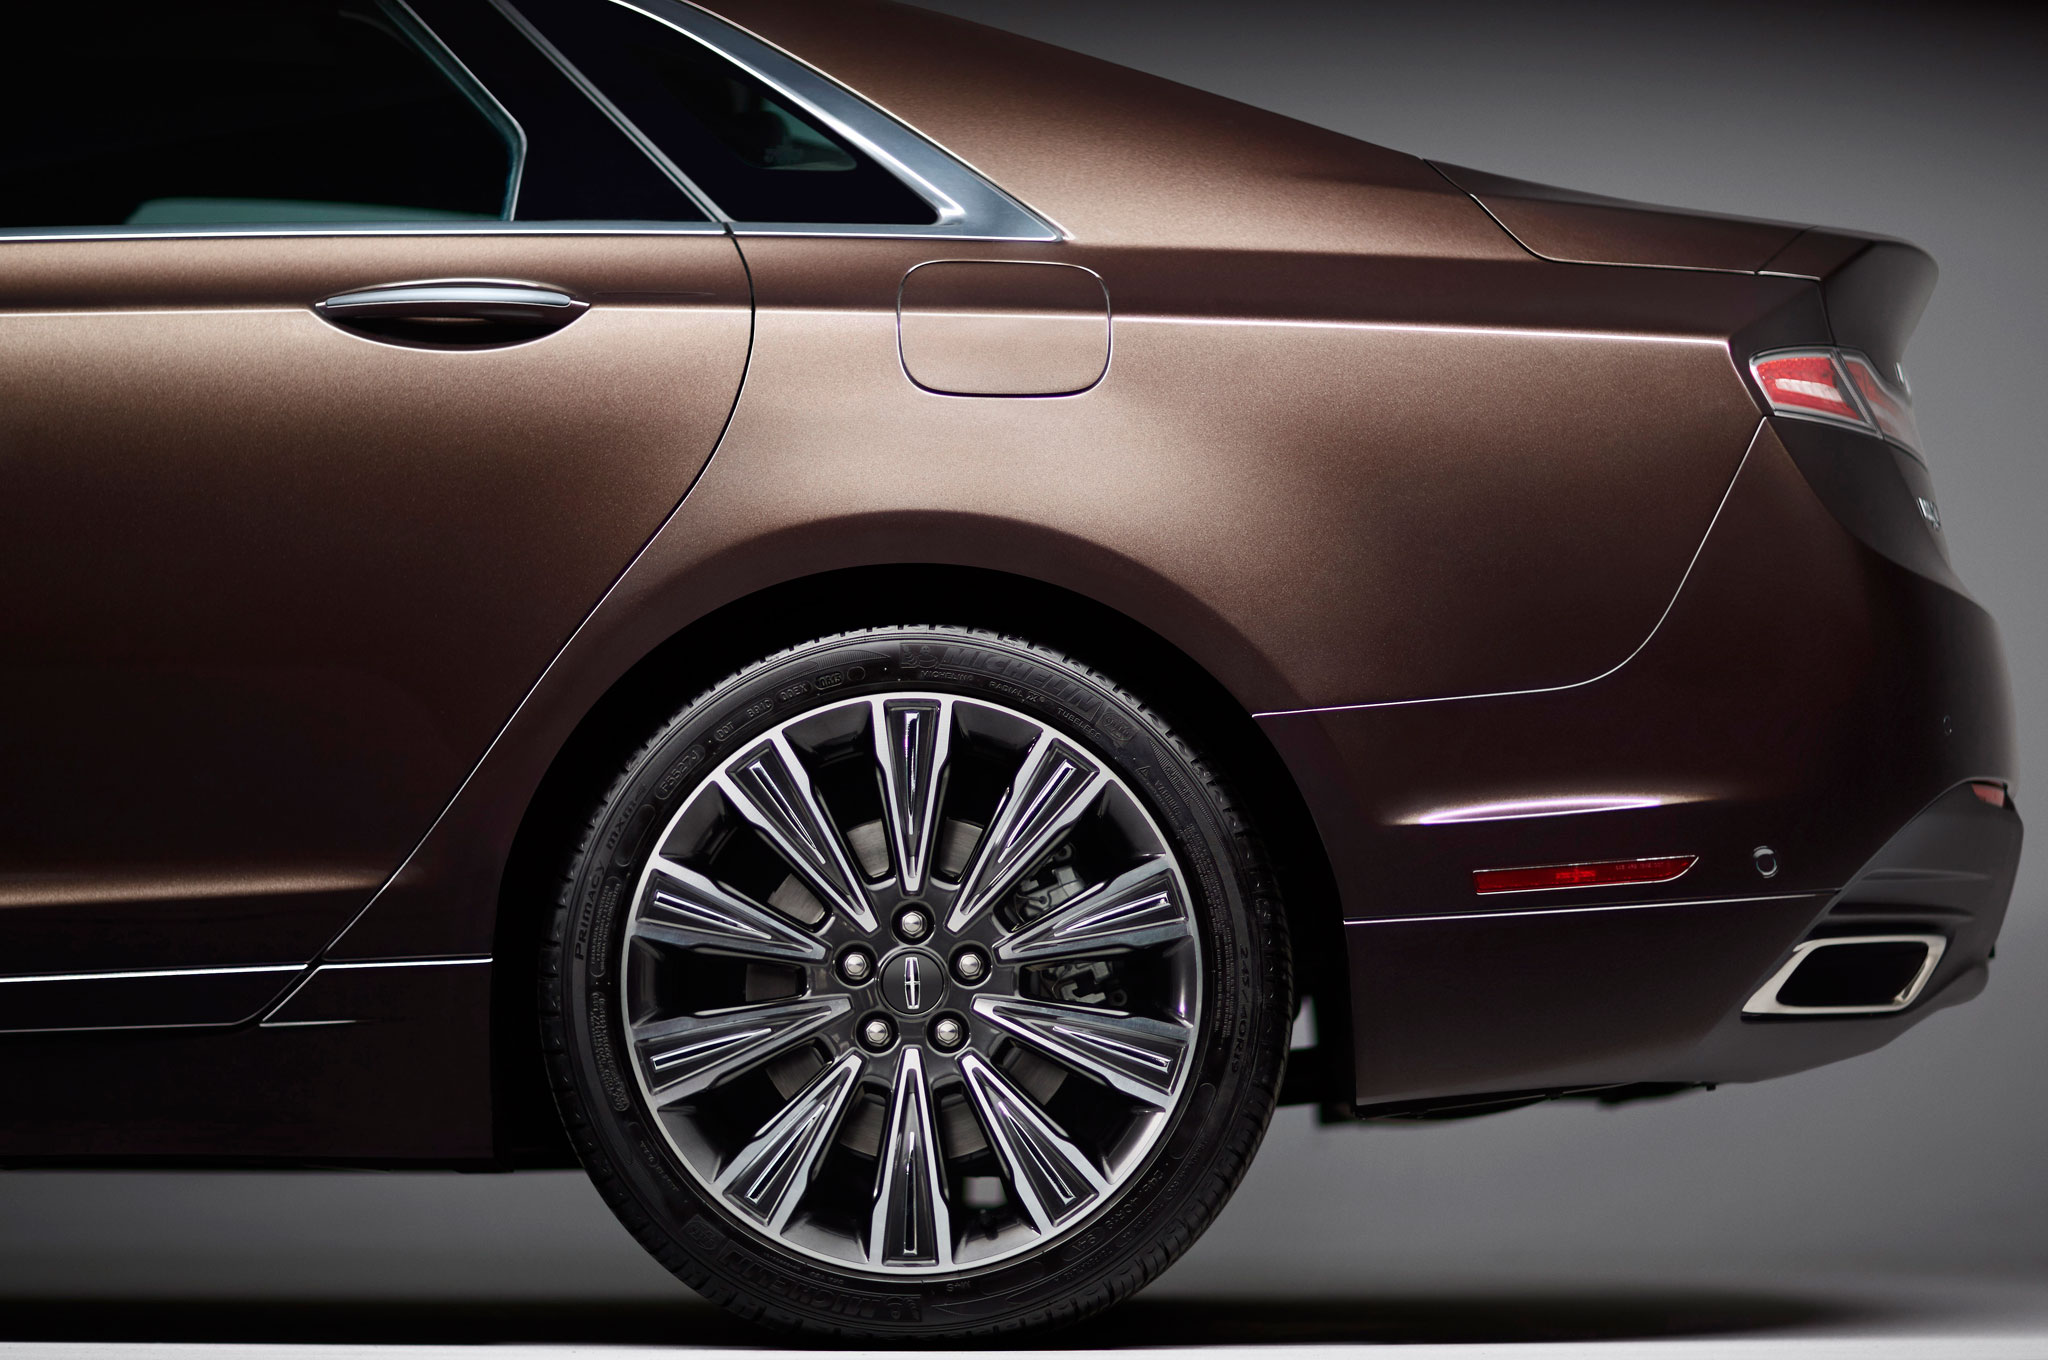 https://enthusiastnetwork.s3.amazonaws.com/uploads/sites/5/2013/08/Lincoln-MKZ-Black-Label-Indulgence-rear-side-and-wheel.jpg?impolicy=entryimage